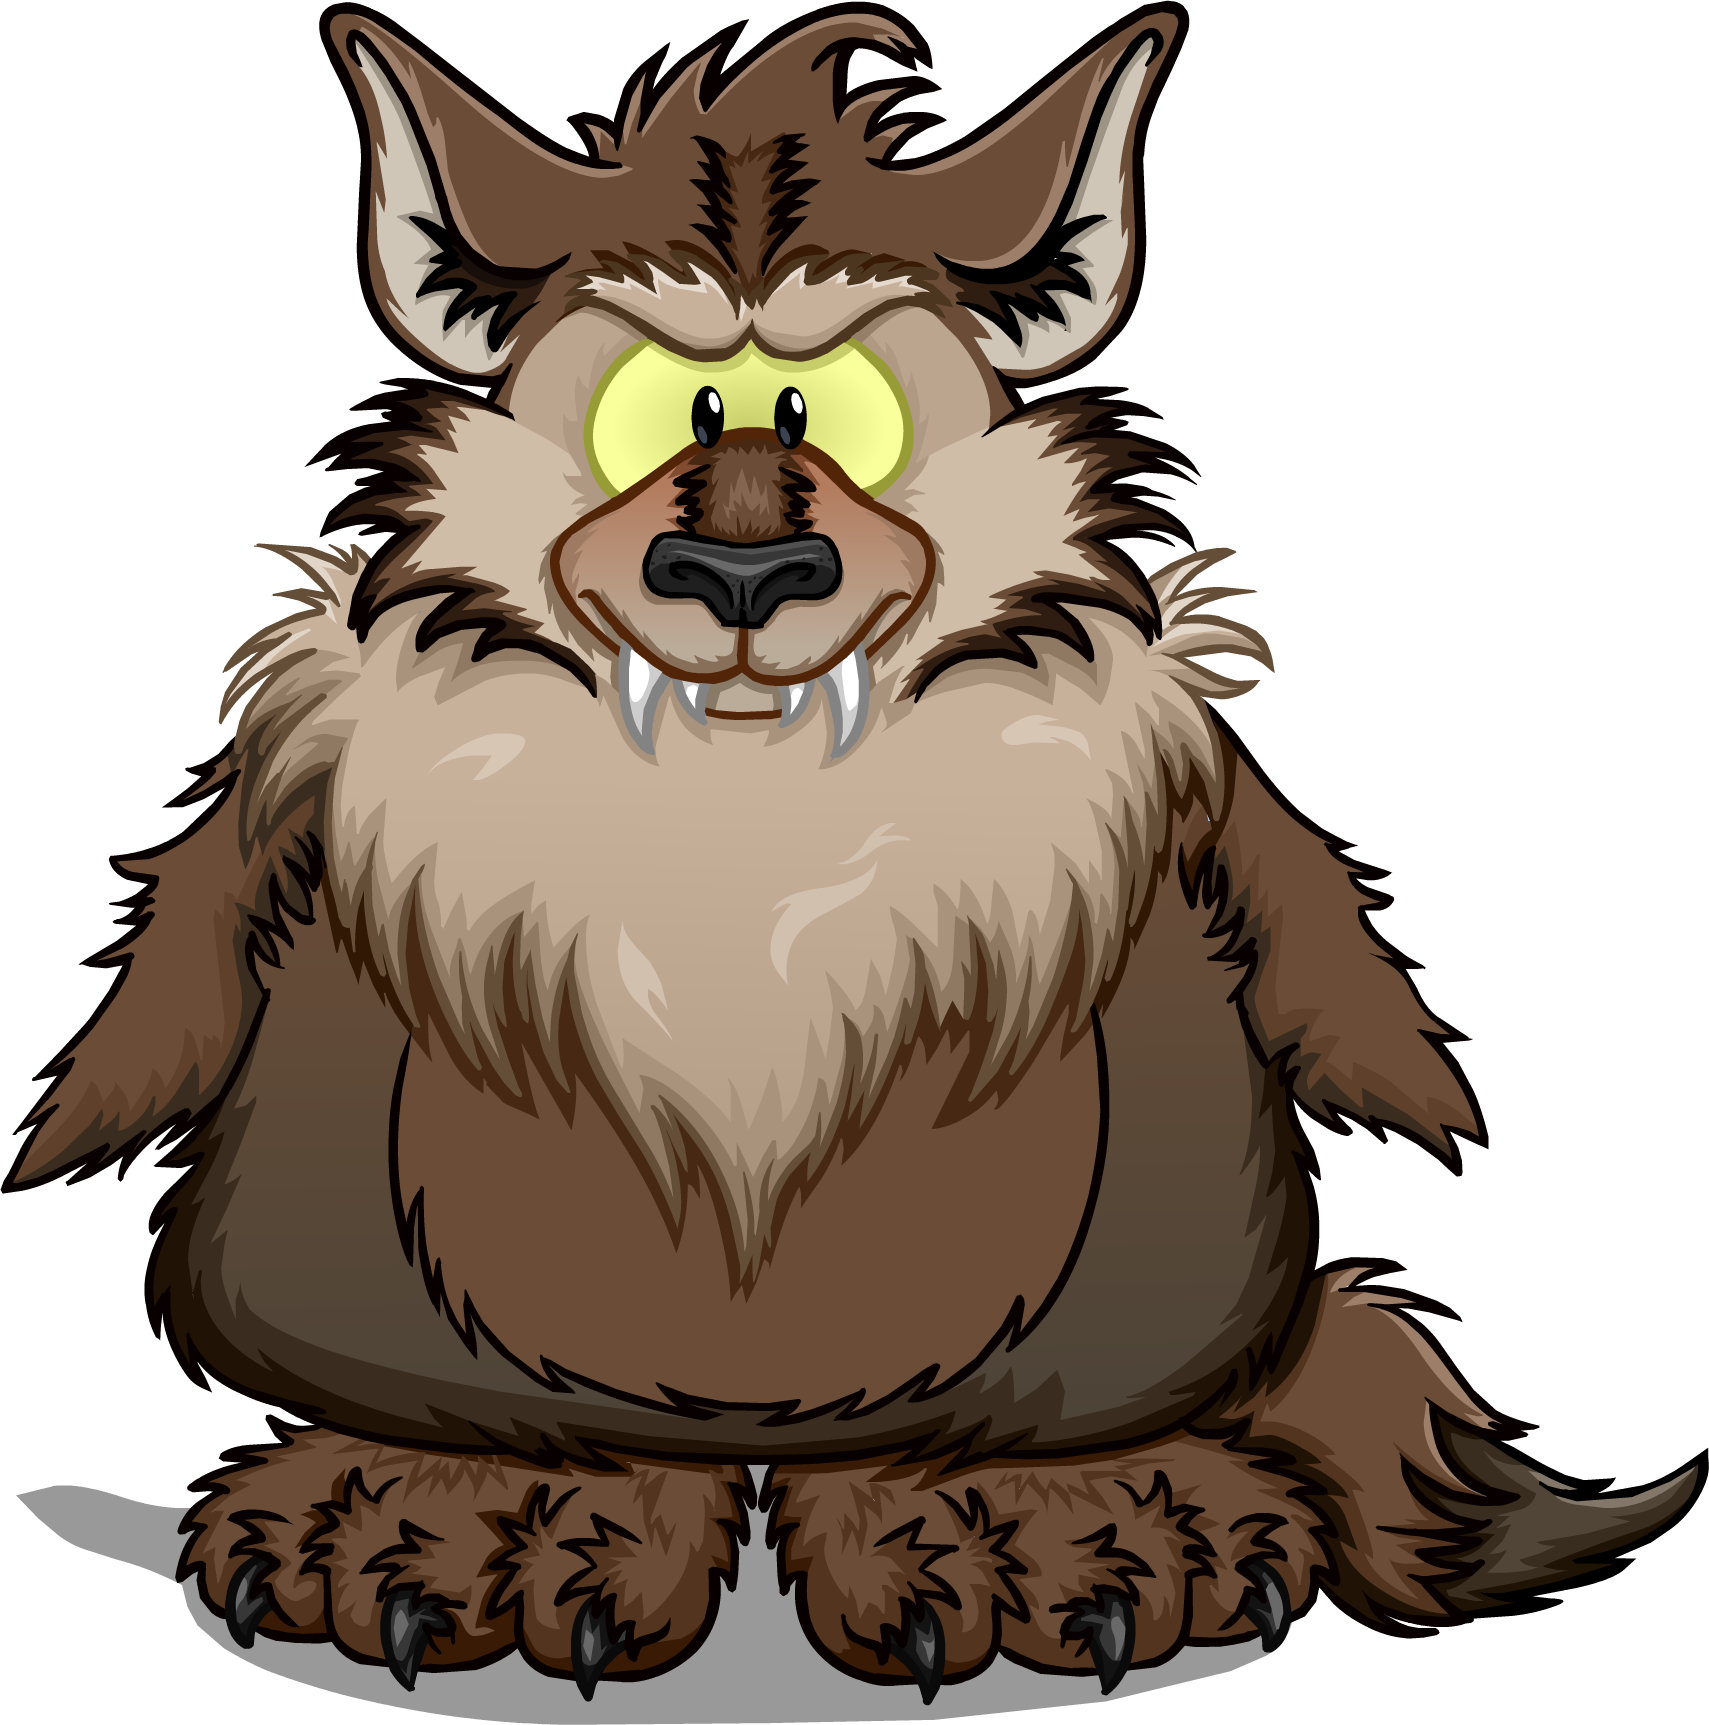 clipart transparent library Halloween werewolf clipart. Image png club penguin